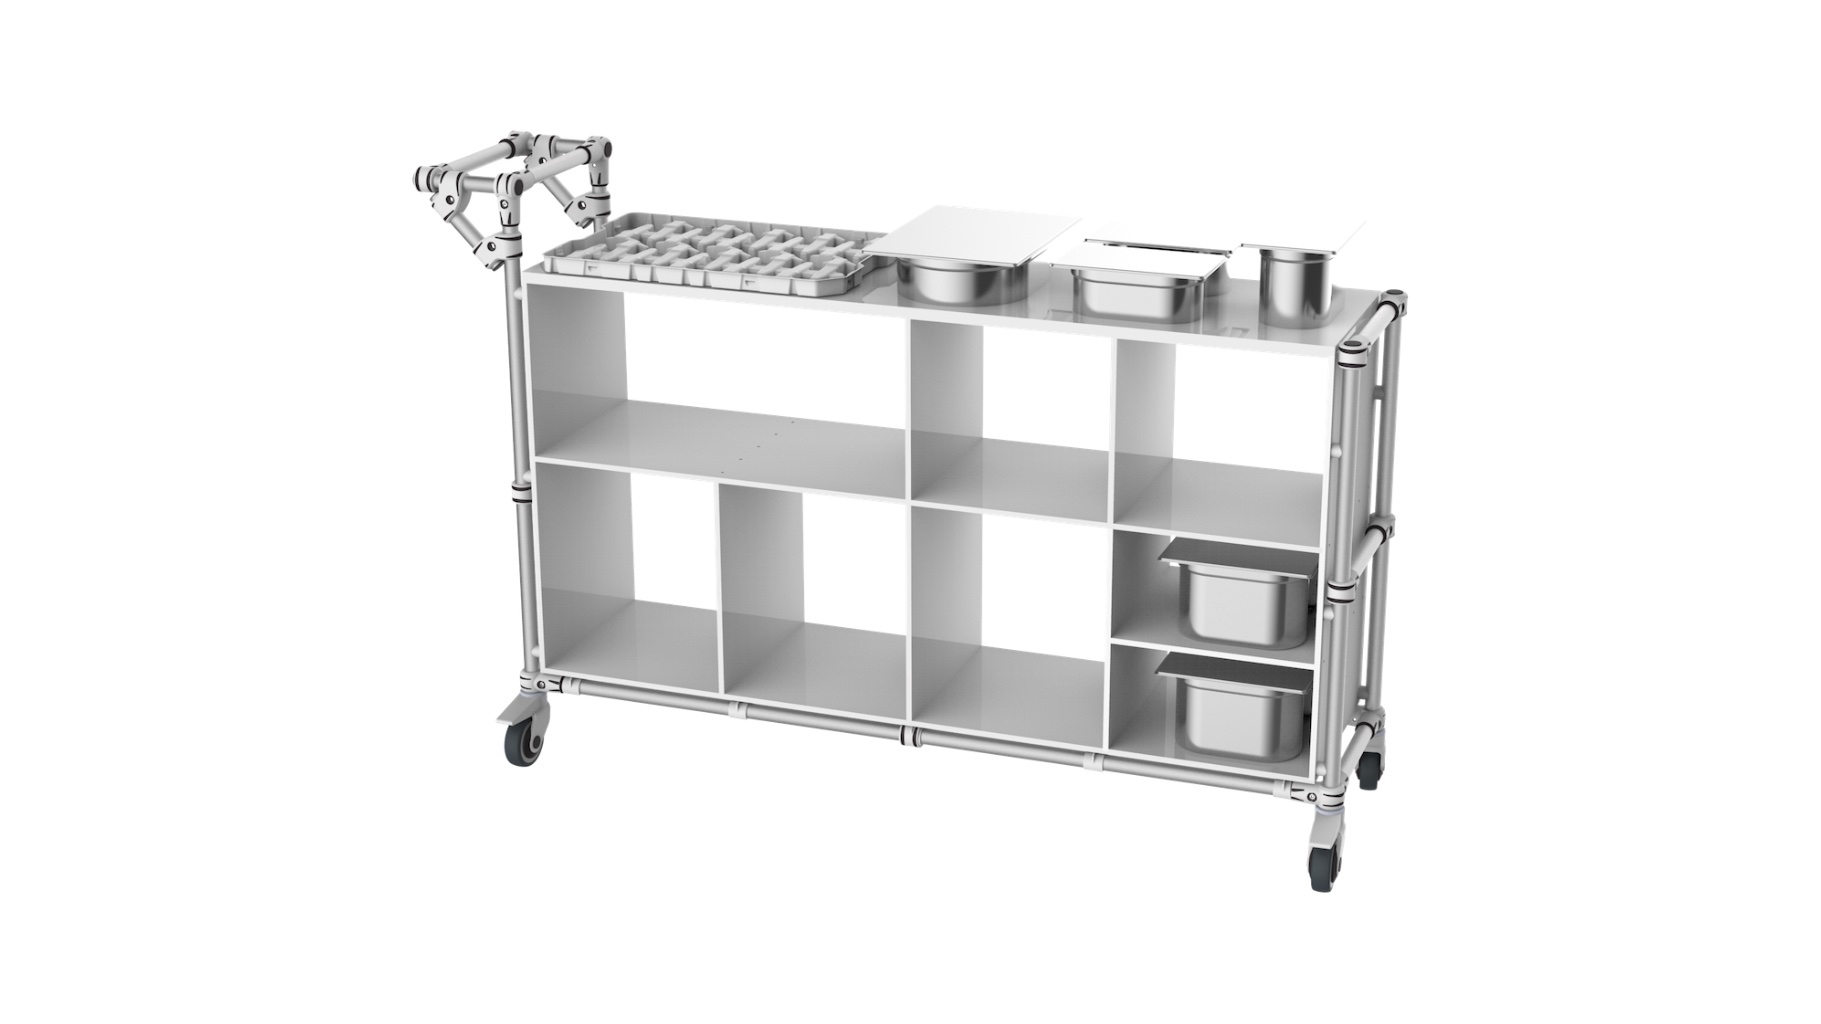 Healthcare - Compartment trolley for visual inspection on the assembly line.